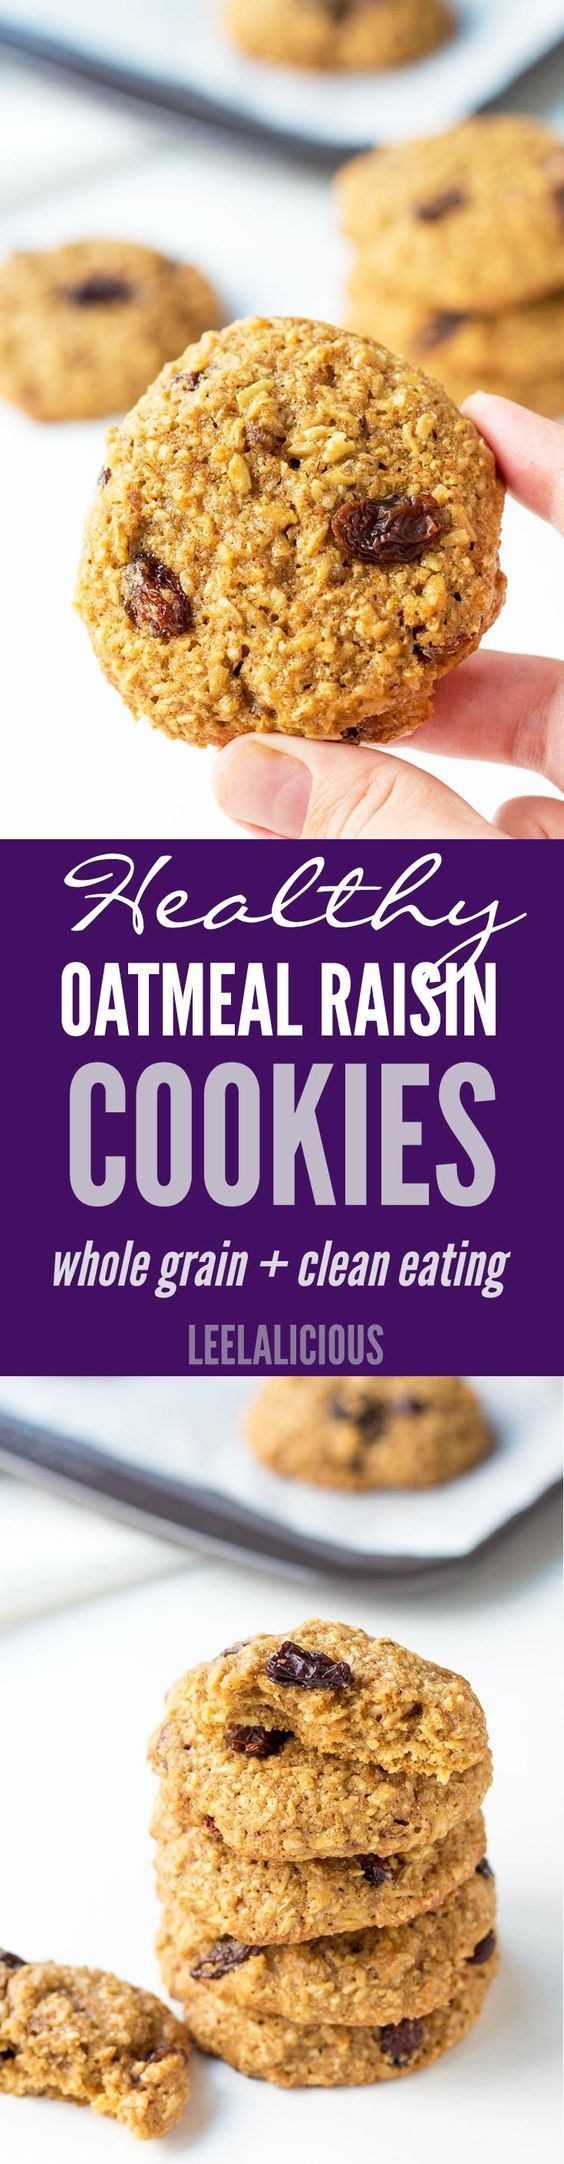 This healthy Oatmeal Raisin Cookies Recipe uses whole grain oats and spelt flour to make chewy and soft oatmeal cookies that are delicious and clean eating.